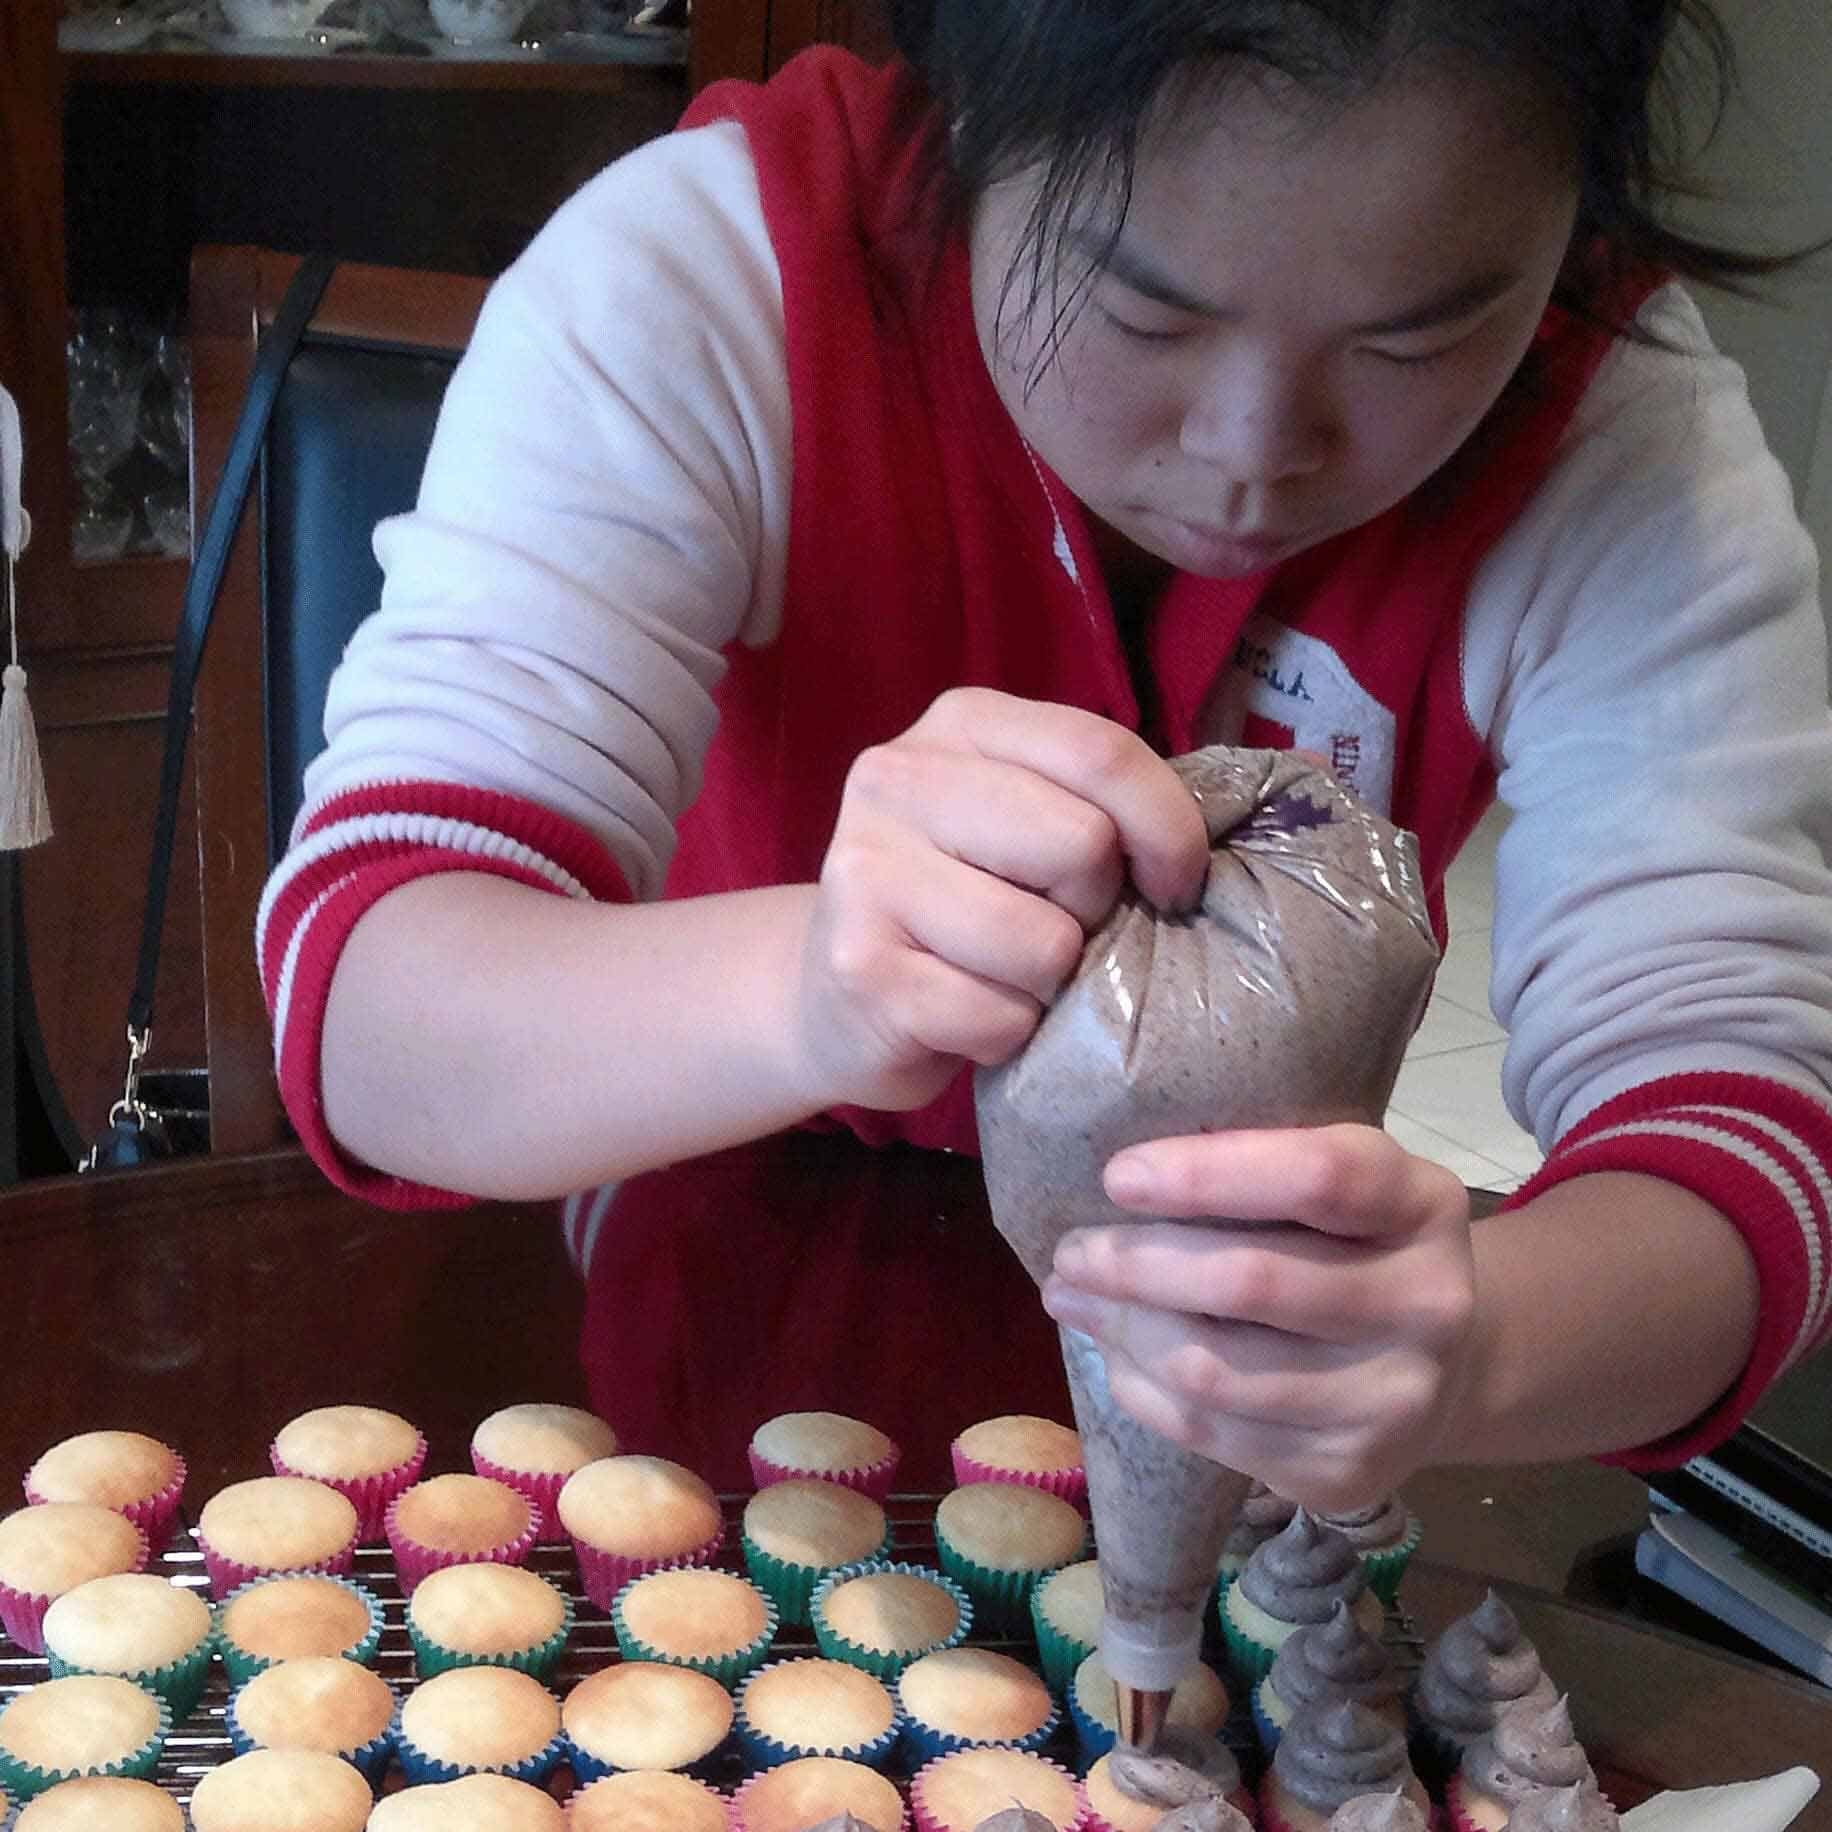 Woman piping icing on cupcakes